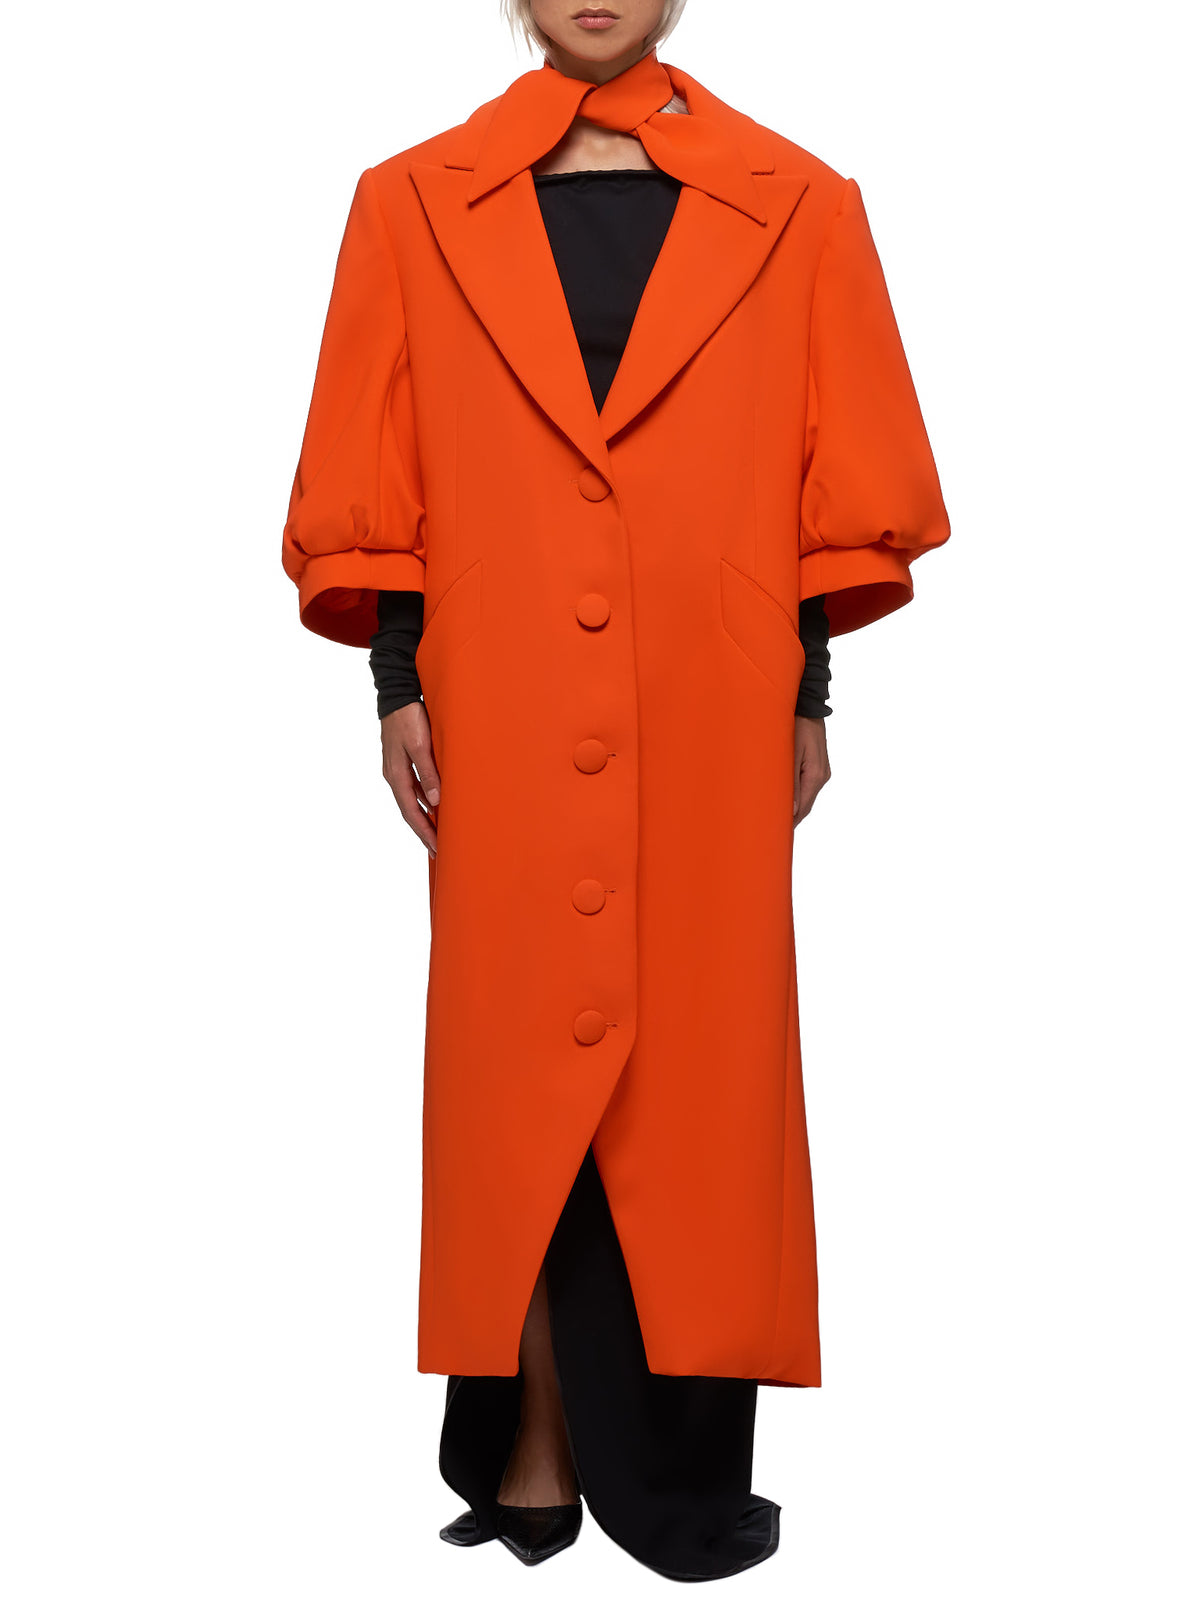 Nicolas Lecourt Mansion Coat - Hlorenzo Front